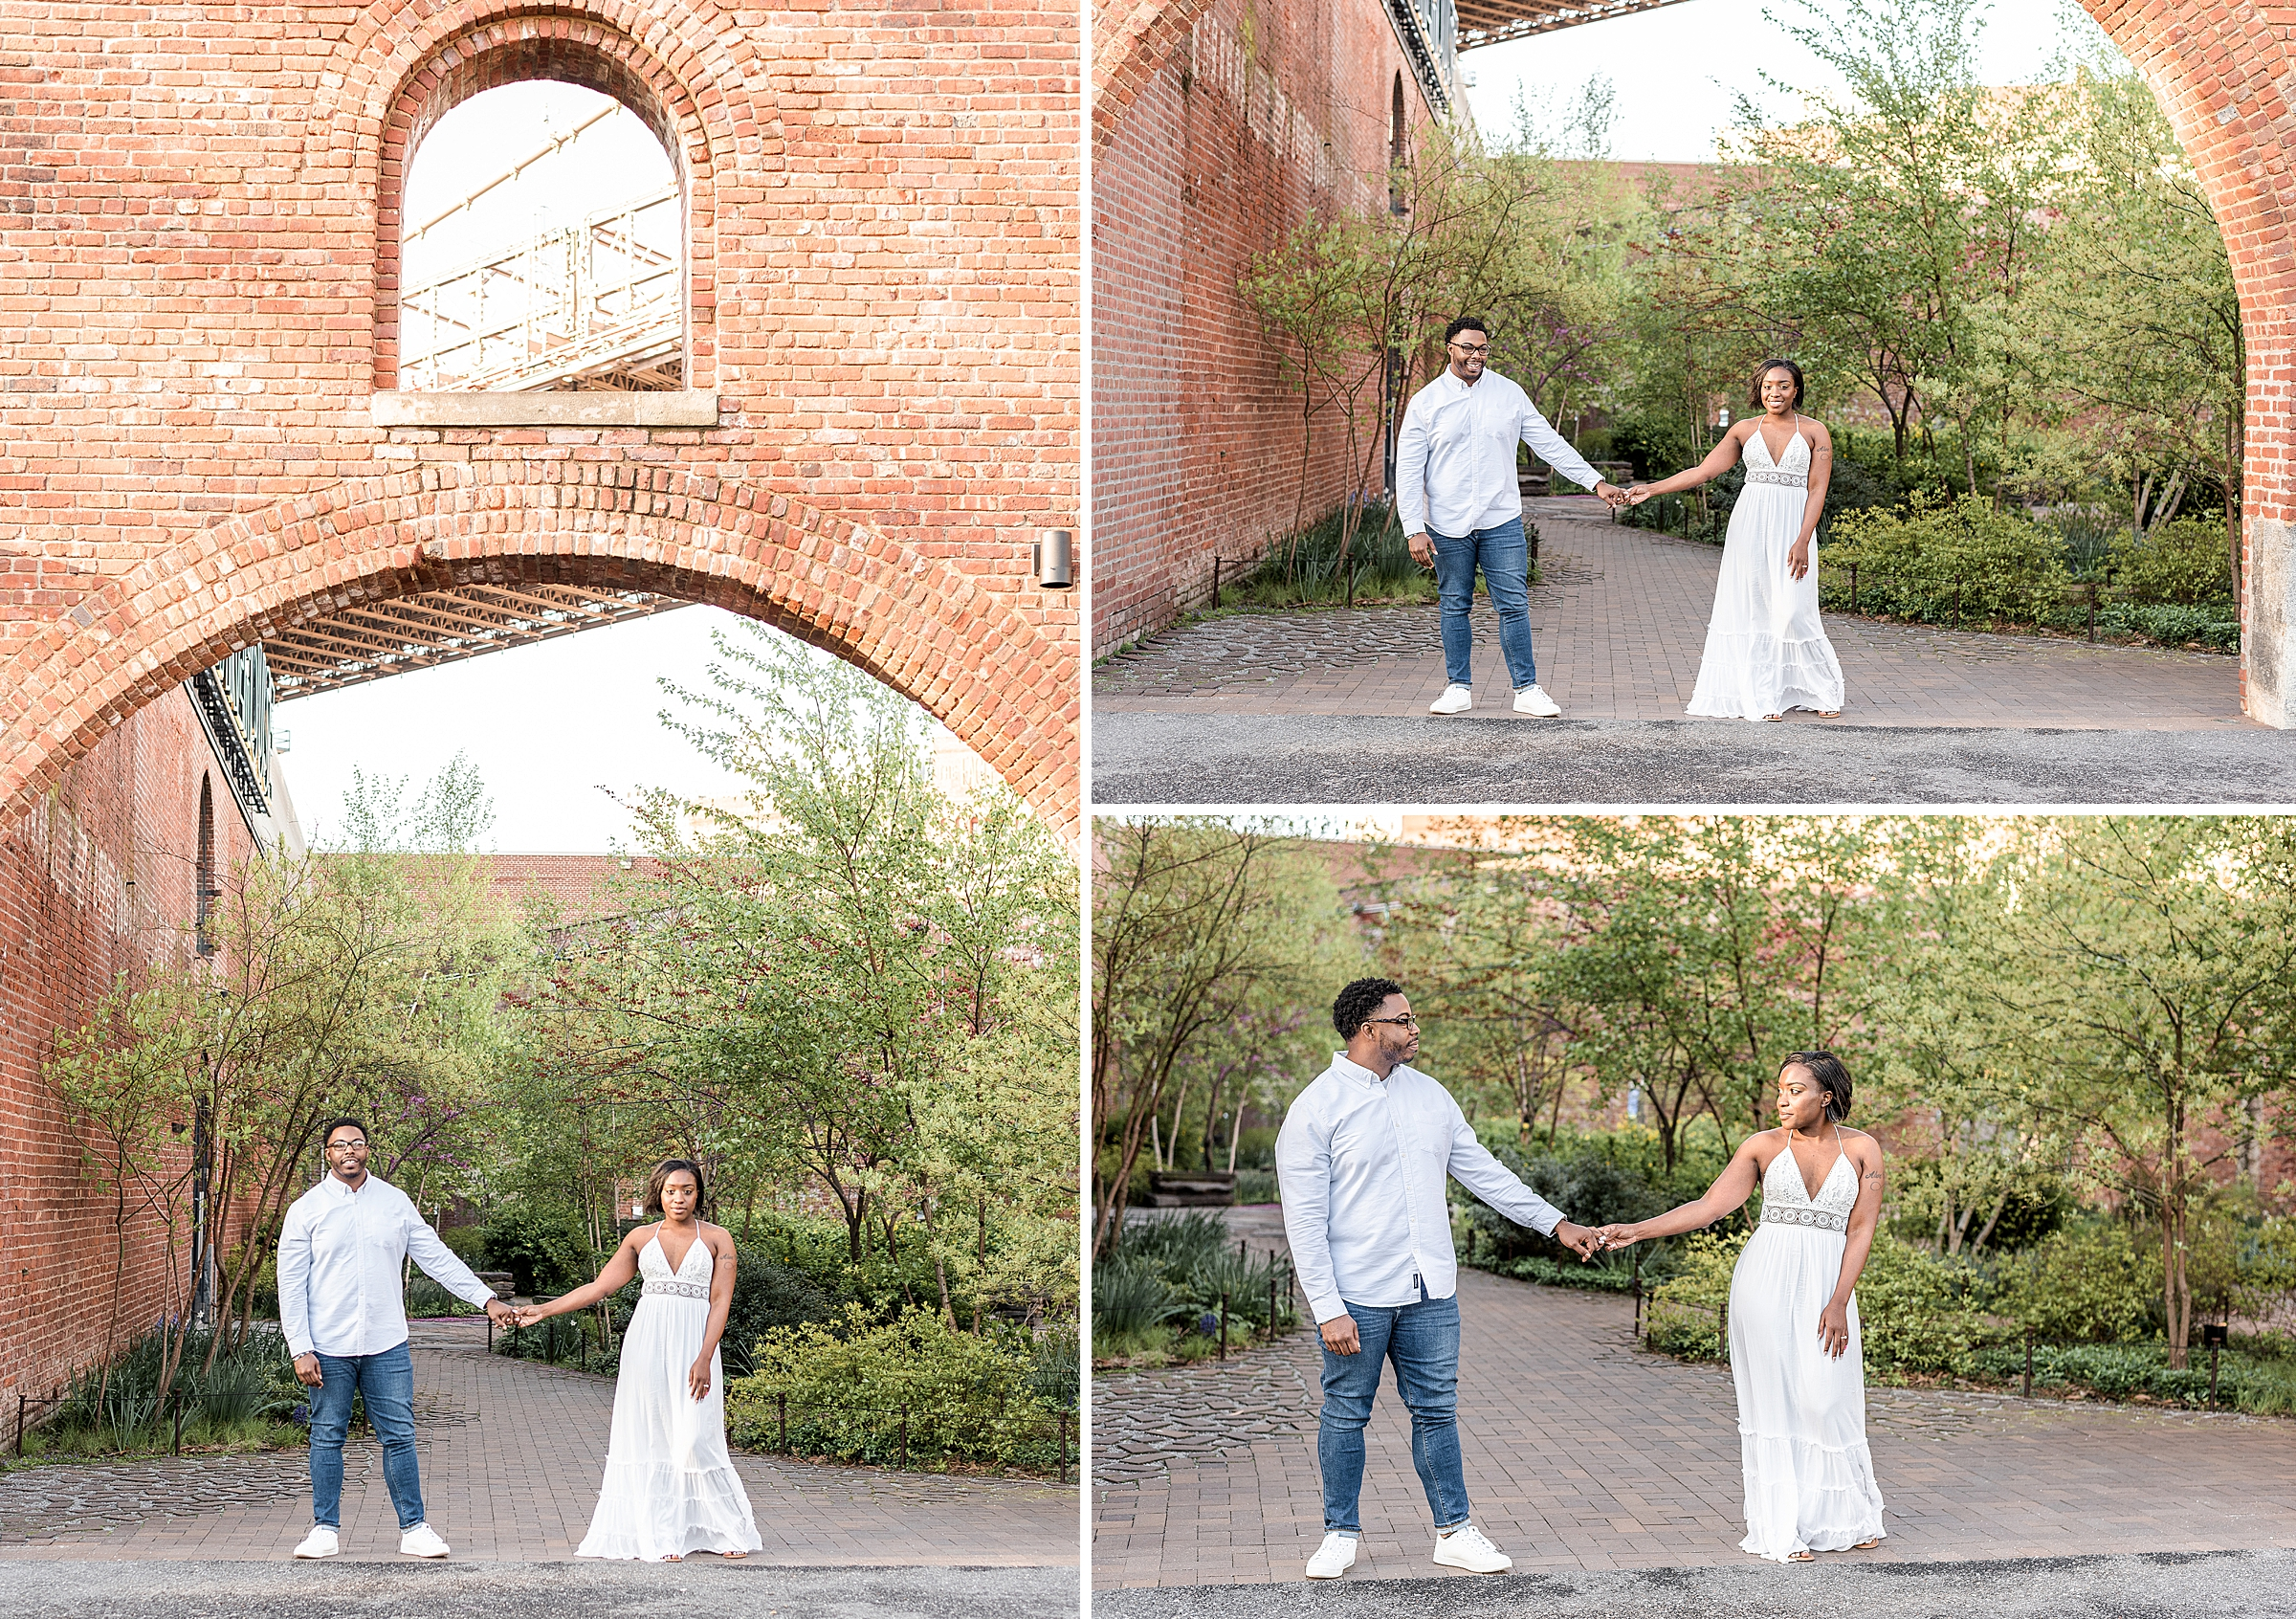 Couple holding hands during a proposal shoot in DUMBO Brooklyn NYC